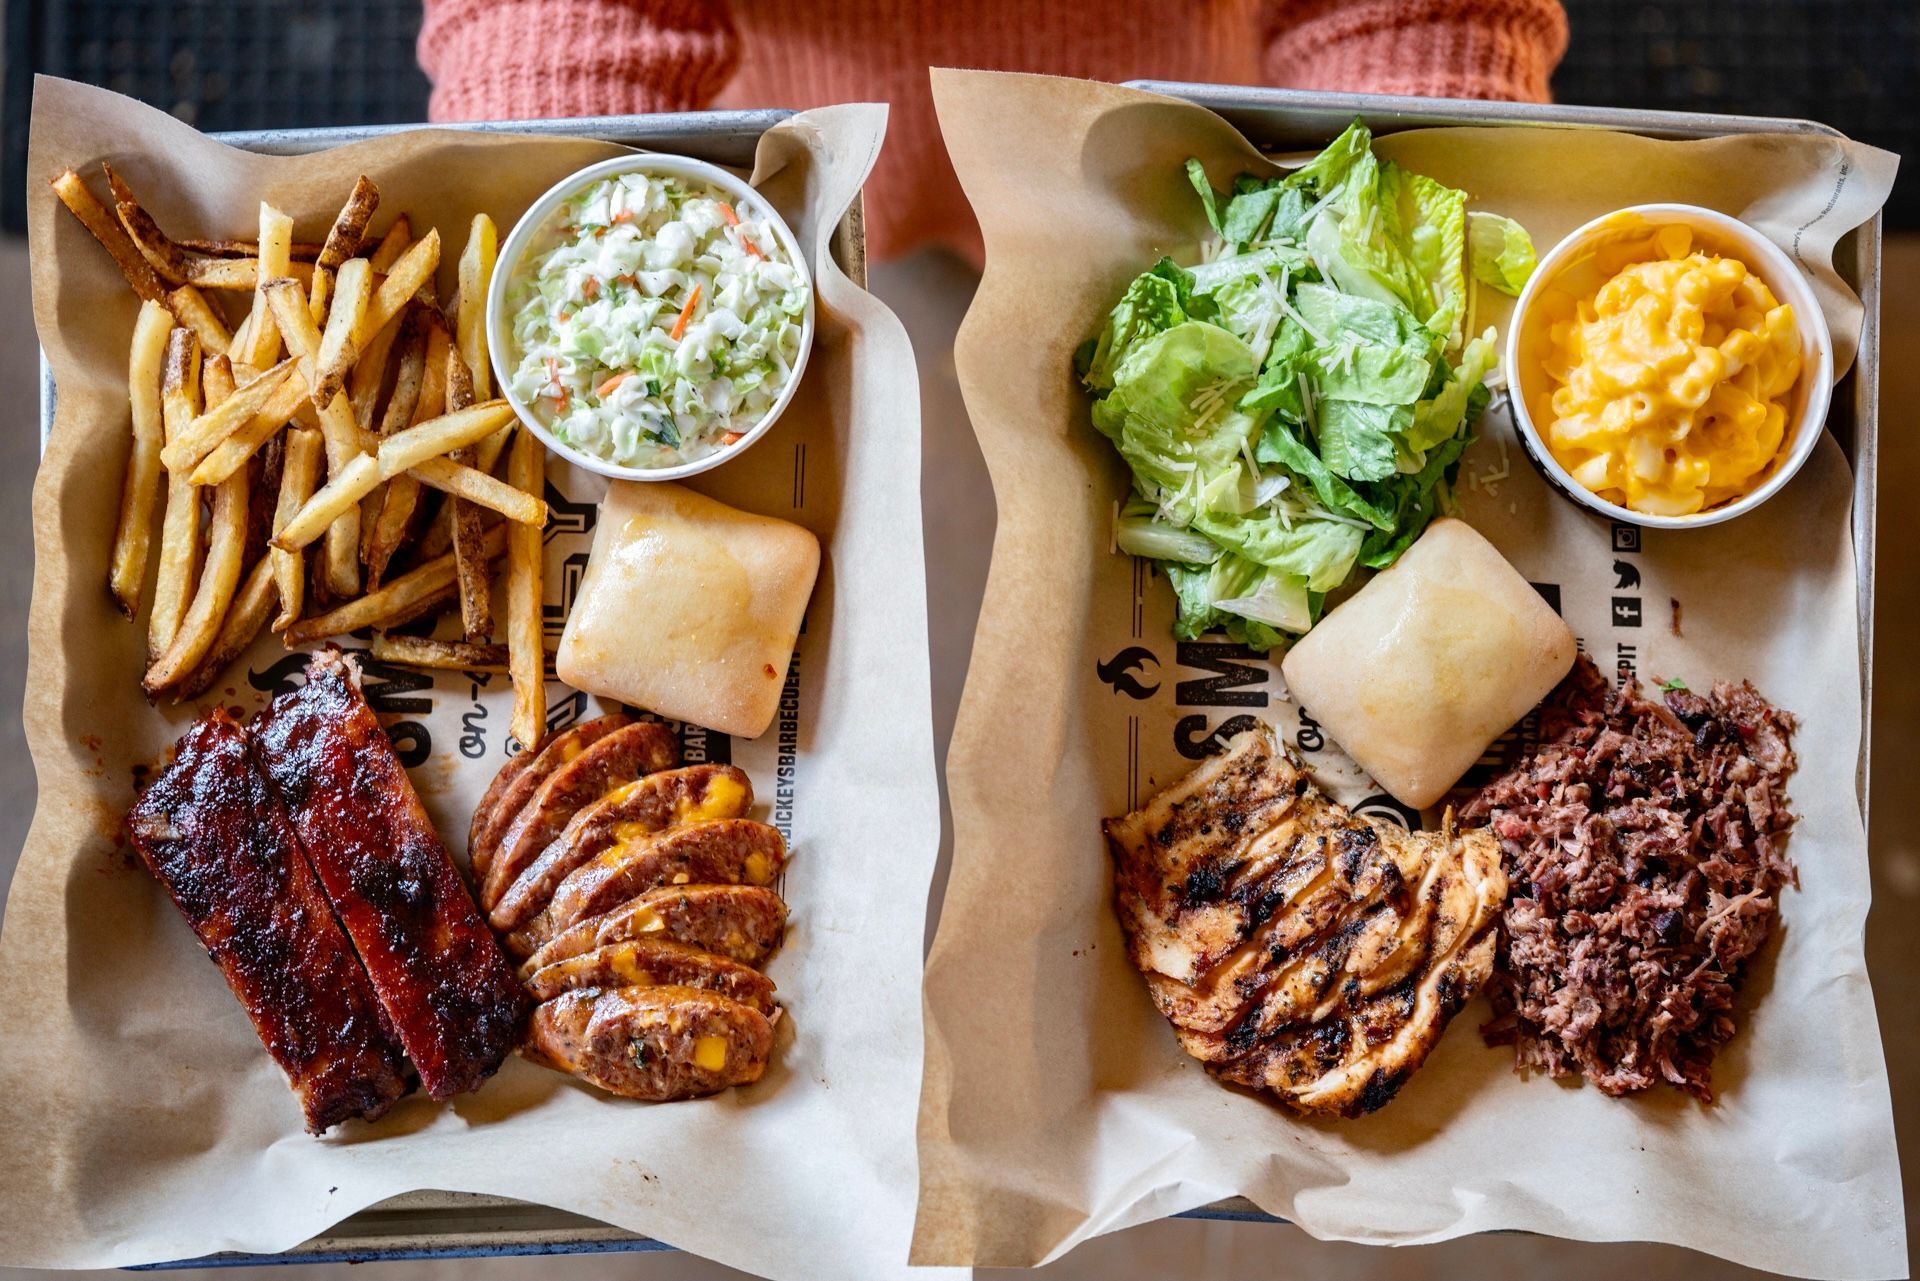 Summer Has Arrived at Dickey's Barbecue Pit Texas-style barbecue restaurant celebrates with debut of seasonal specials like free delivery and new King's Hawaiian® Pulled Pork Sandwich with Dr Pepper Barbecue Sauce